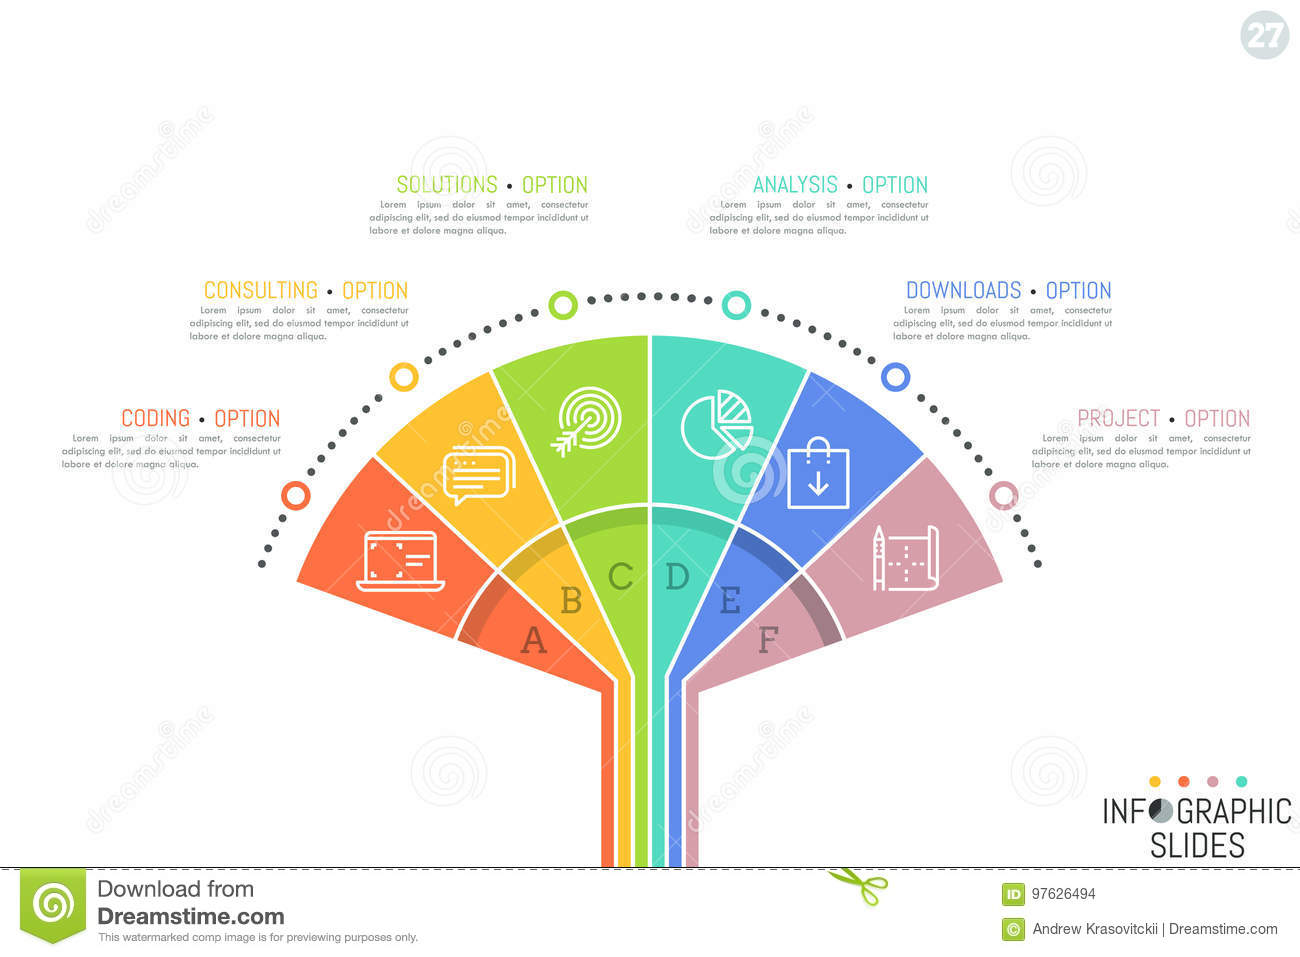 Minimal Infographic Design Template Fan Diagram Divided Into 6 Sectoral Elements Pictograms And Text Boxes Stock Vector Illustration Of Management Diagram 97626494